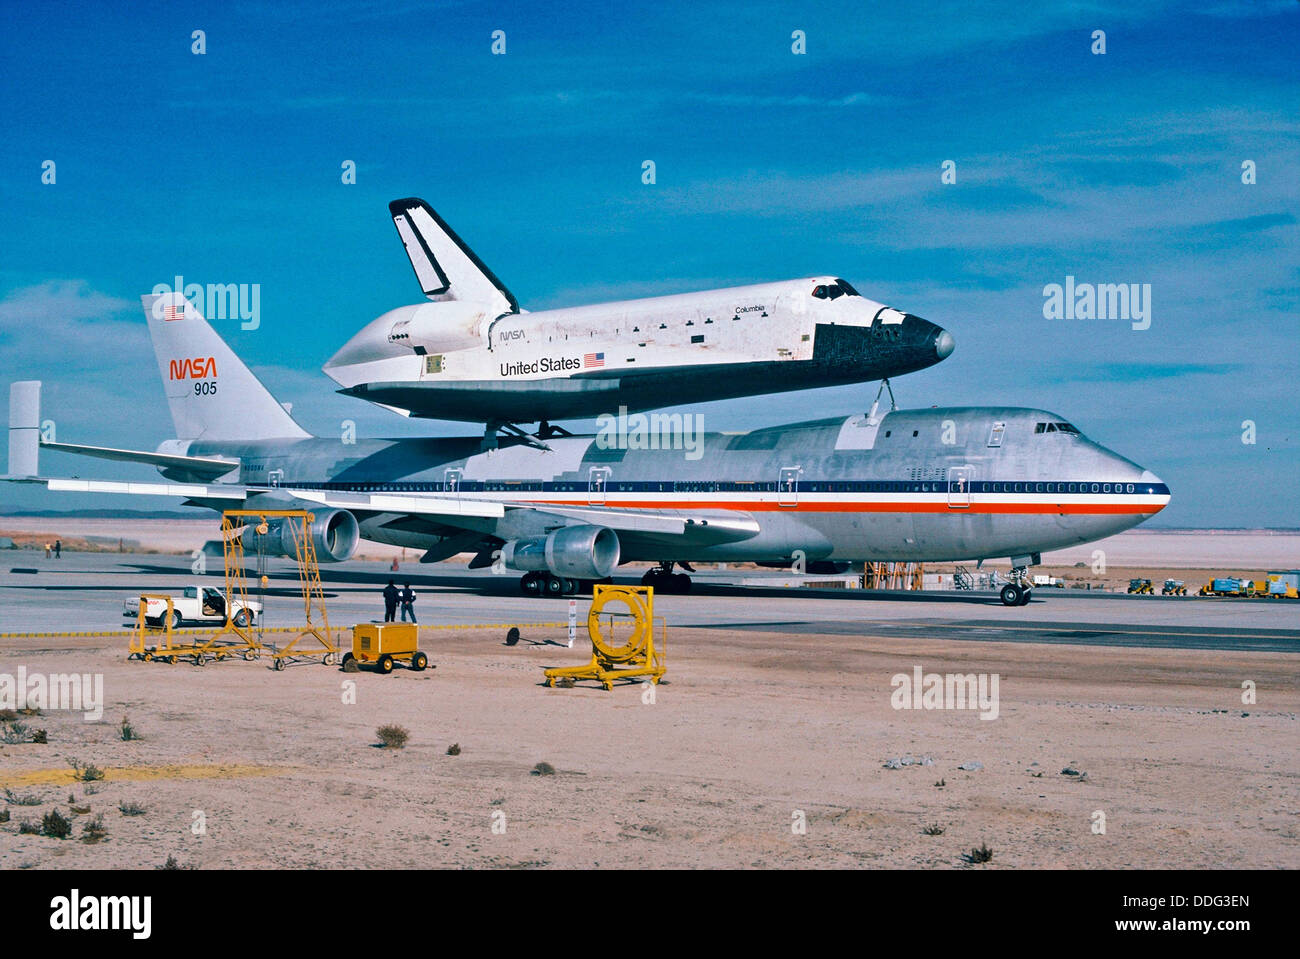 aeroplane boeing 747 with Stock Photo Nasa Space Shuttle Columbia Piggy Backed On A 747 For The Return To 59975629 on 98659398 Electric Jumbo Jets How Many Batteries Do You Need To Get Airborne moreover File Airbus A320neo first takeoff at Toulouse Blagnac Airport 04 moreover Airbus 318 100 in addition Watch furthermore Boeing Scales Down 747 8 Production Rate.